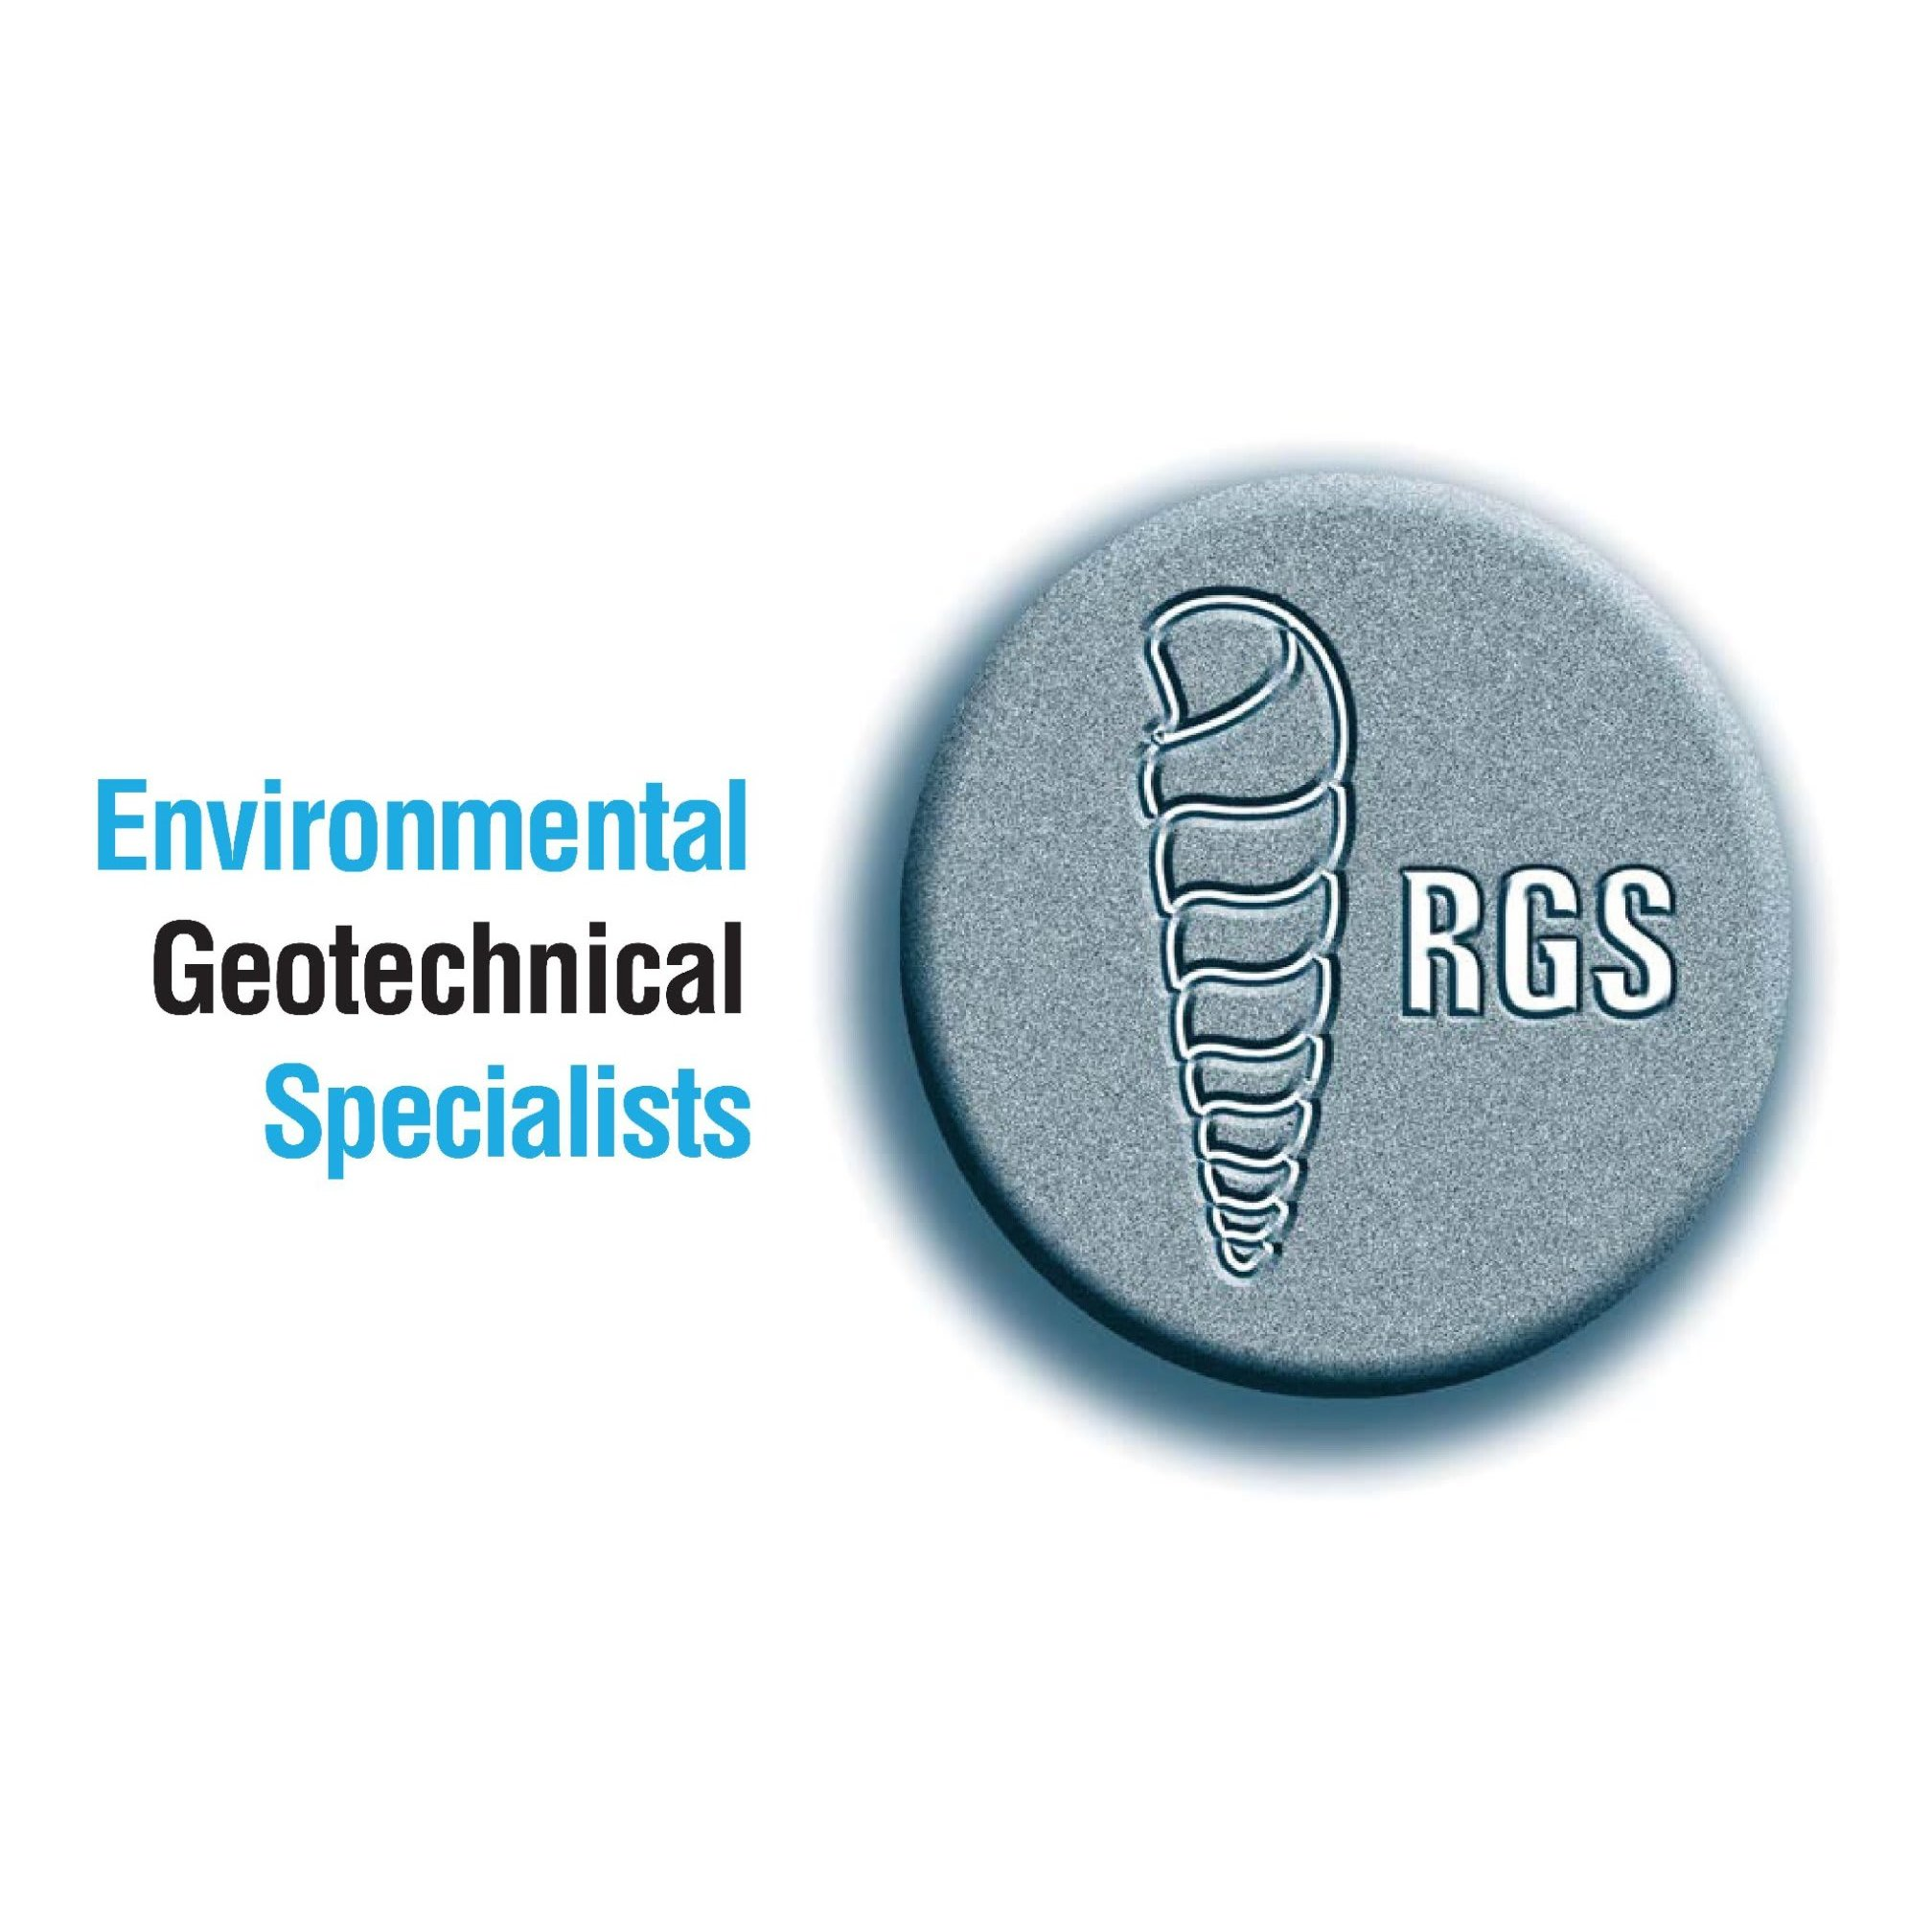 Rogers Geotechnical Services Ltd